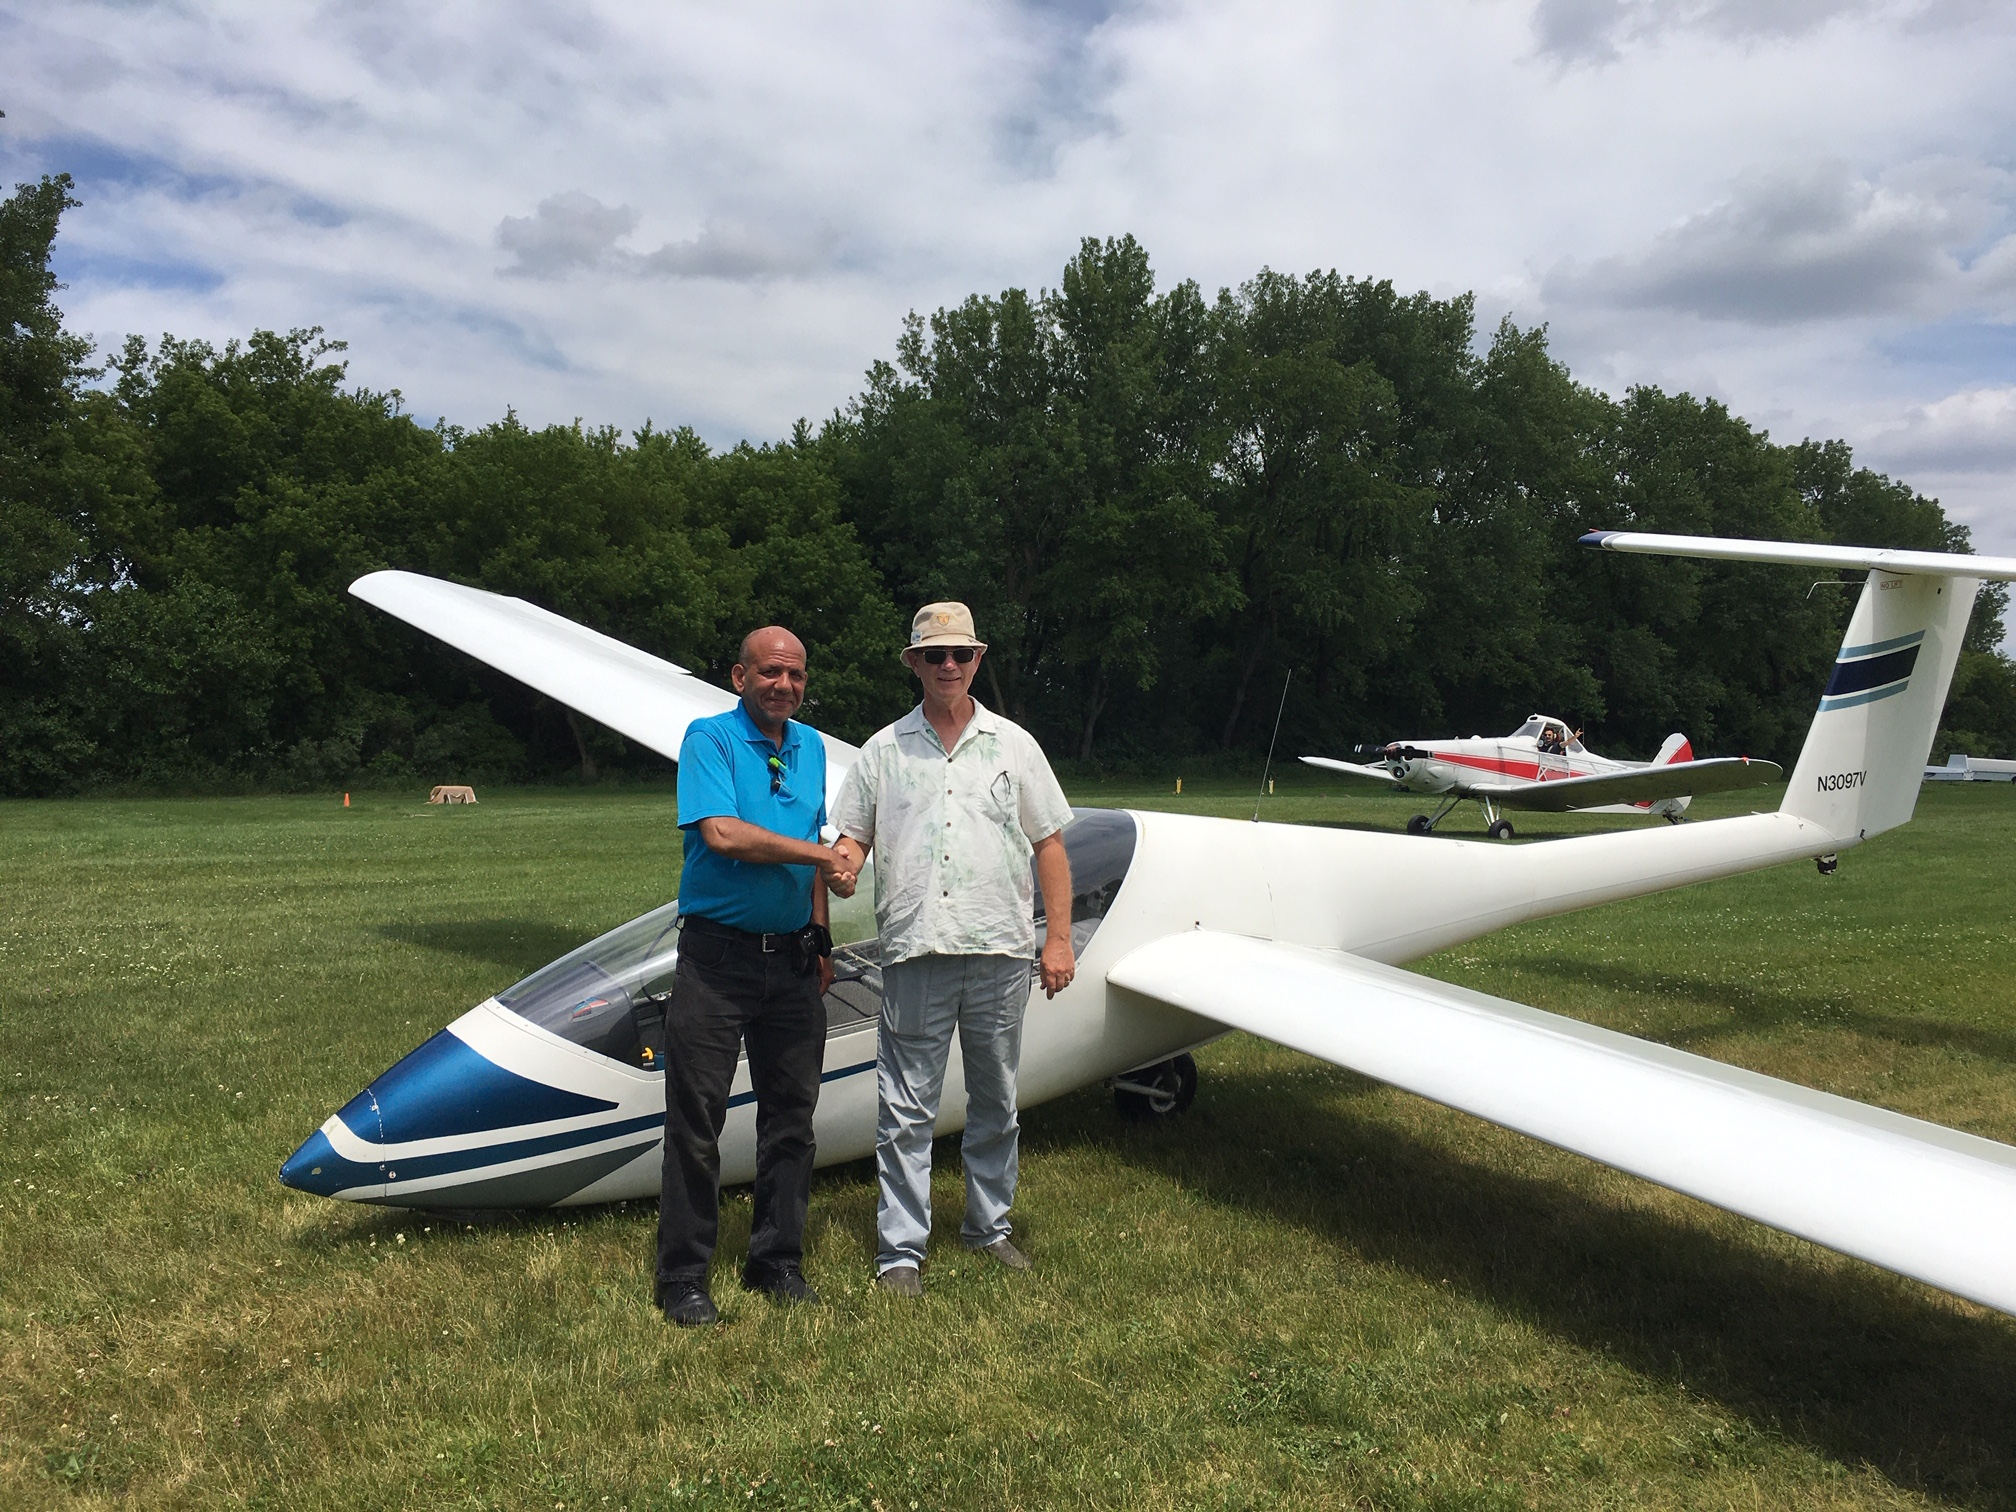 Steve Snyder congratulates Frank Smith on his solo flight with TowPilot Aaron in the background